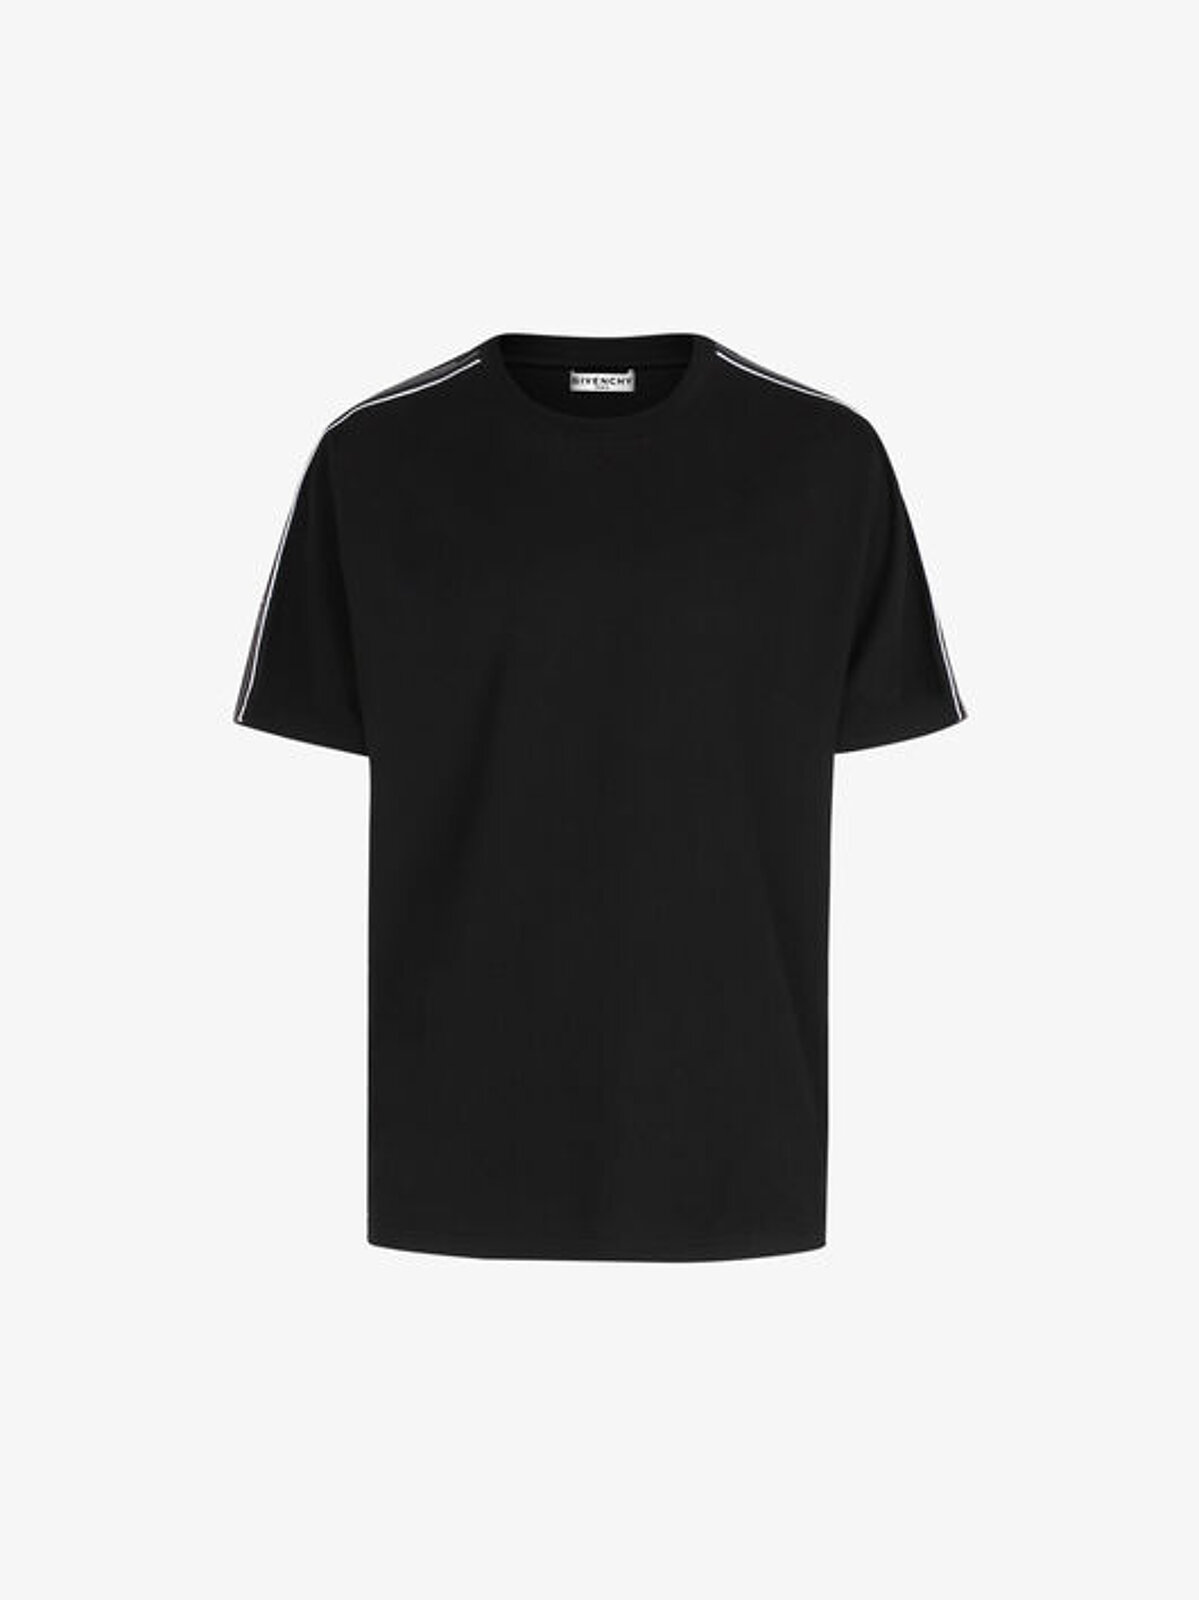 T-Shirt Con Strisce Givenchy - Givenchy